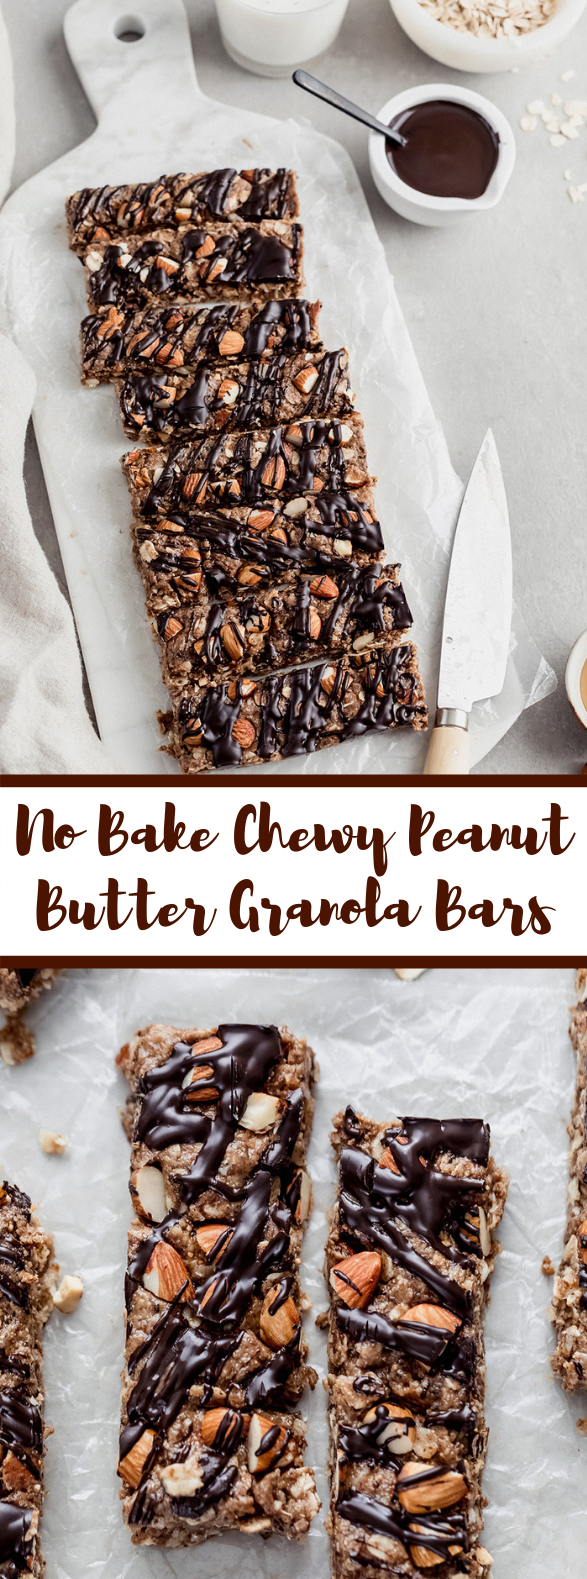 No Bake, Chewy Peanut Butter Granola Bars #desserts #darkchocolate